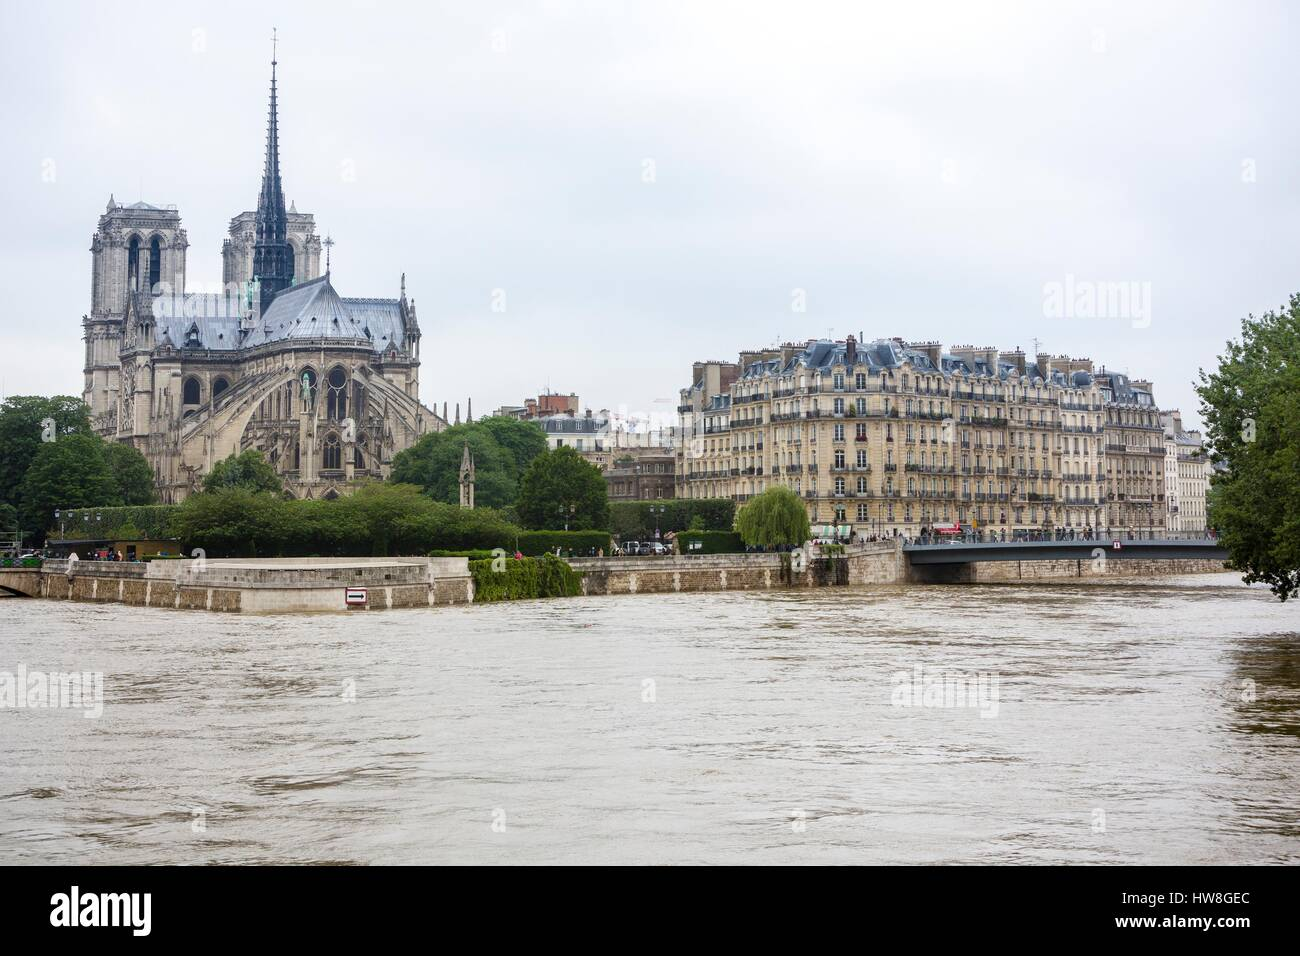 Image result for notre dame flood